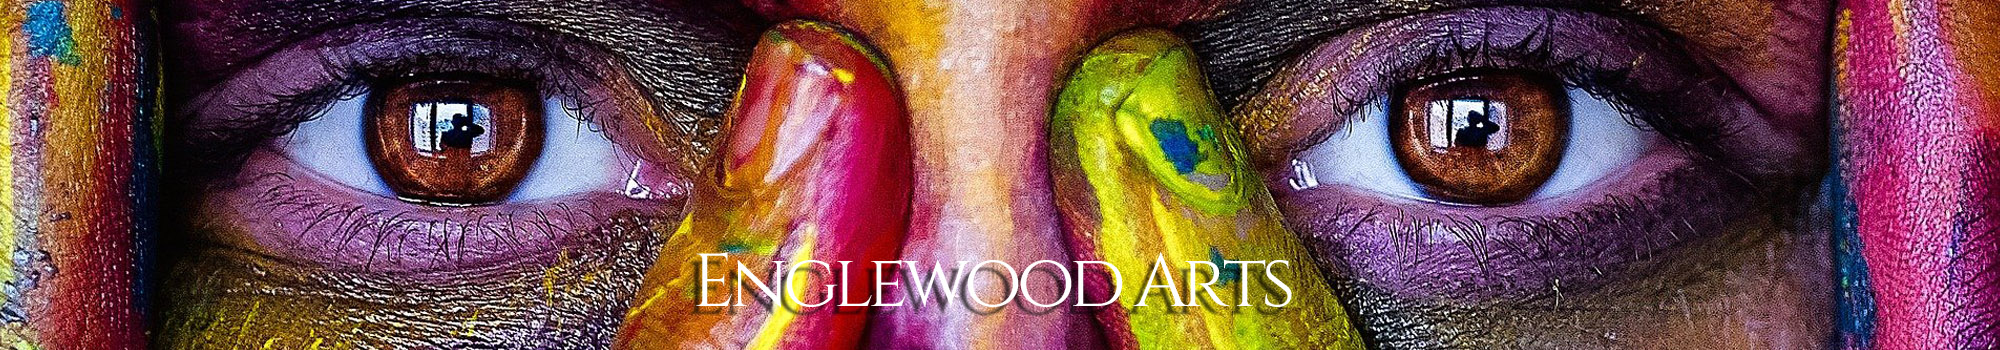 Englewood Arts and Artists from SW Florida